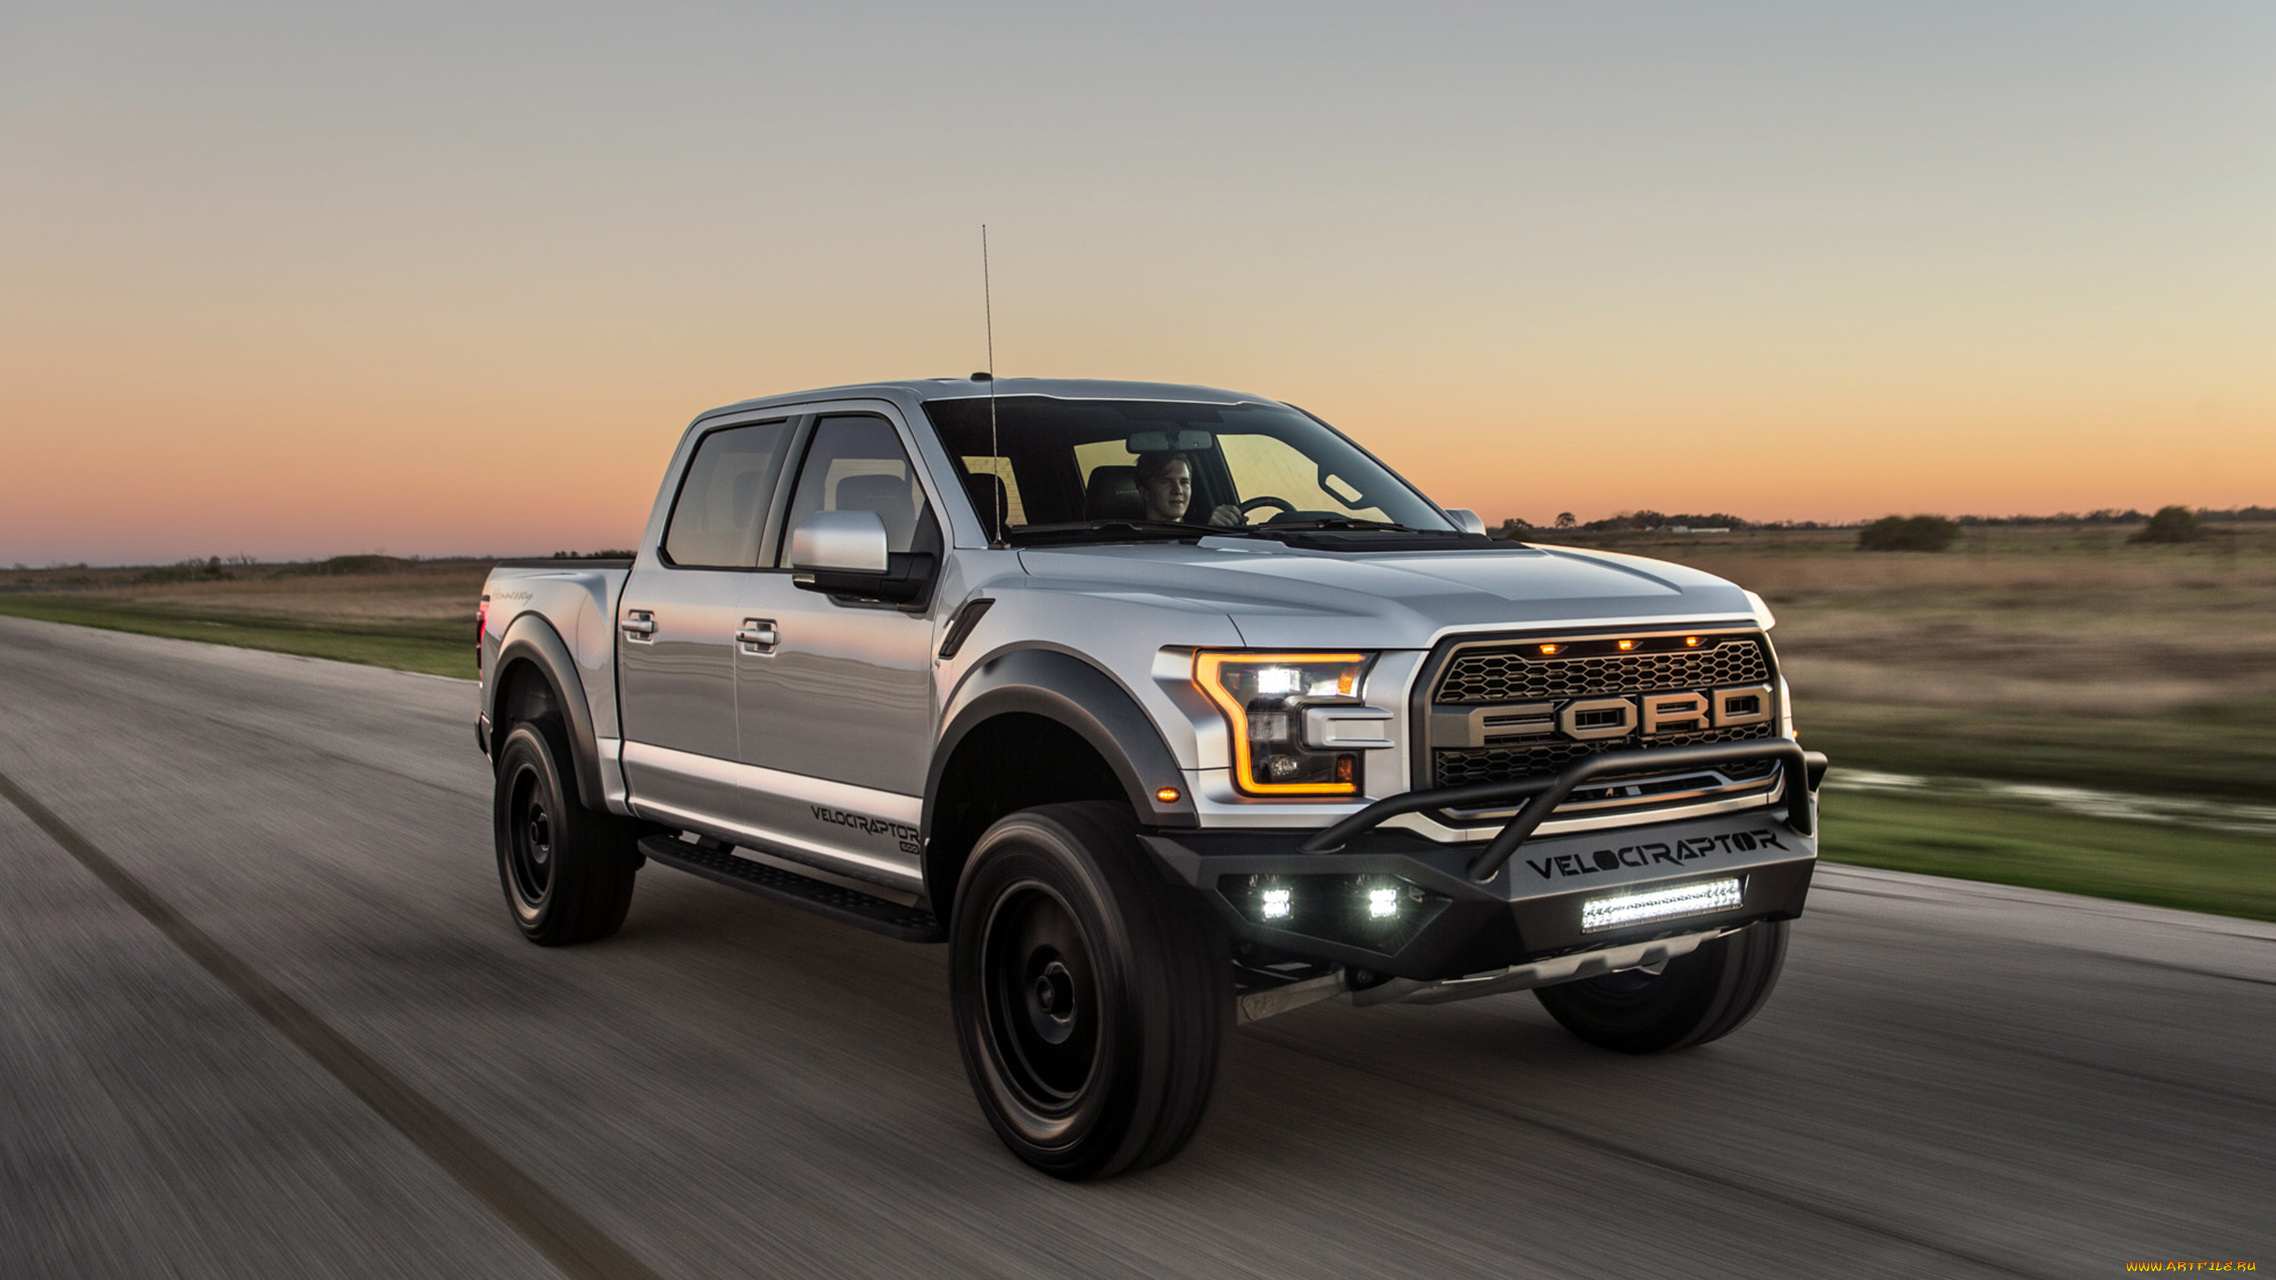 ford raptor price - 1024×670